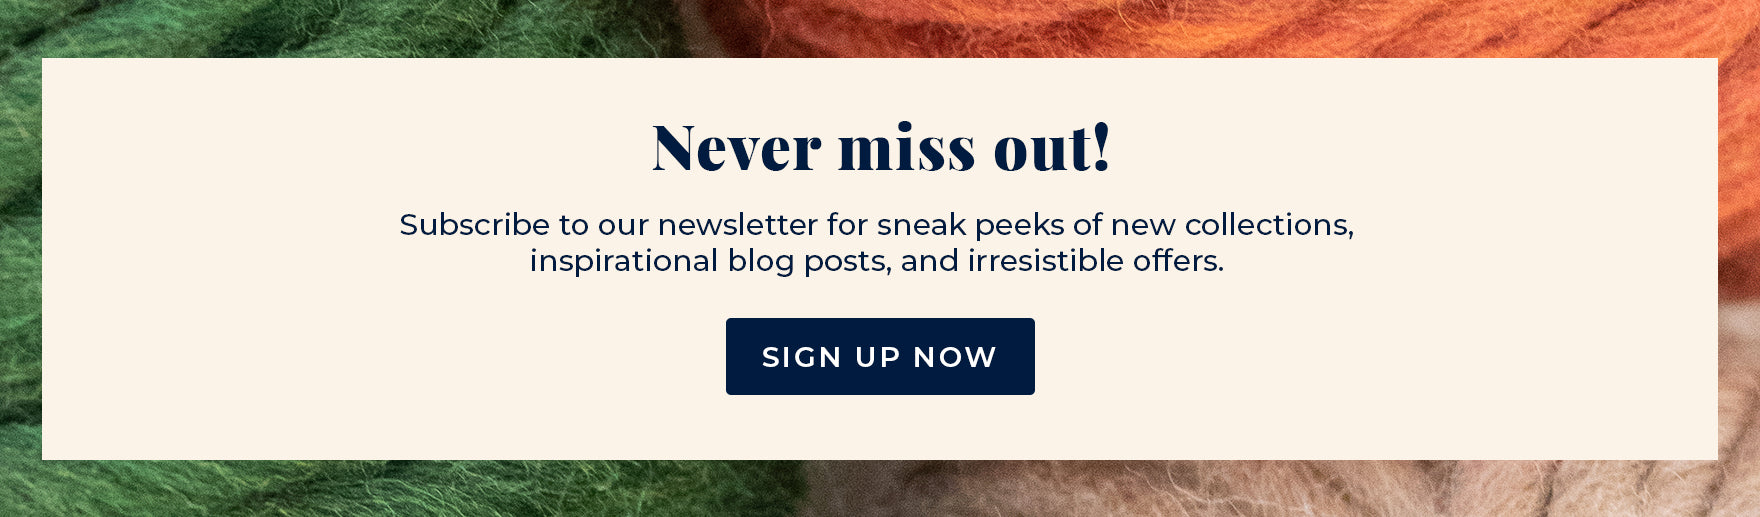 Subscribe to Stitch & Story's newsletter